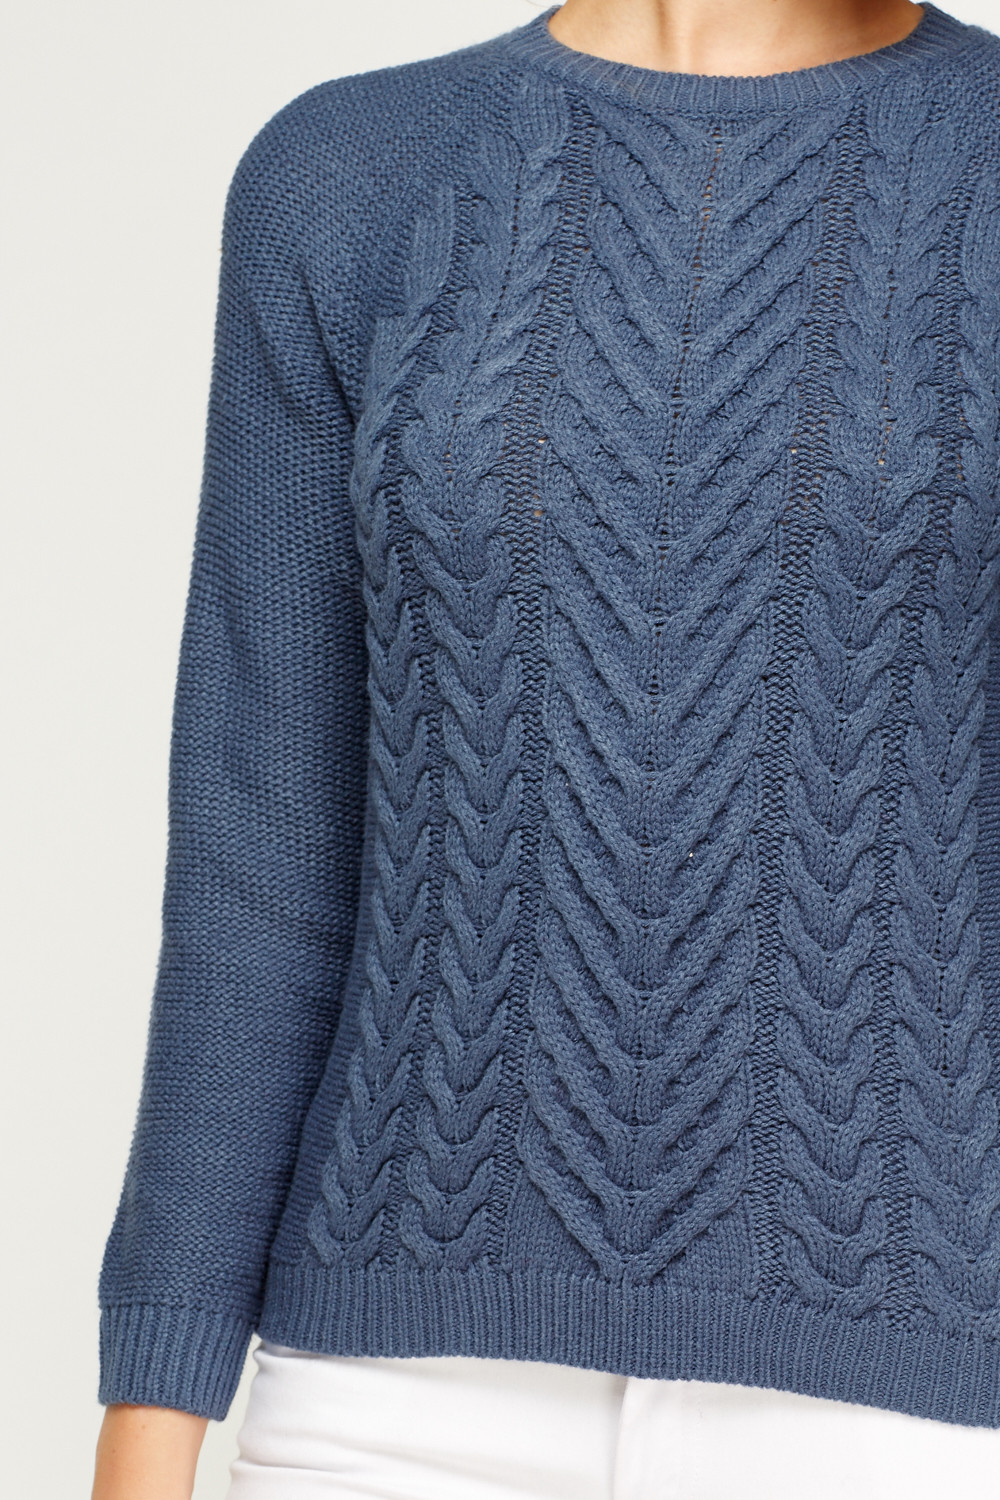 Womens Cable Knit Sweater Best Of Cable Knit Sweater Just £5 Of Innovative 44 Pics Womens Cable Knit Sweater